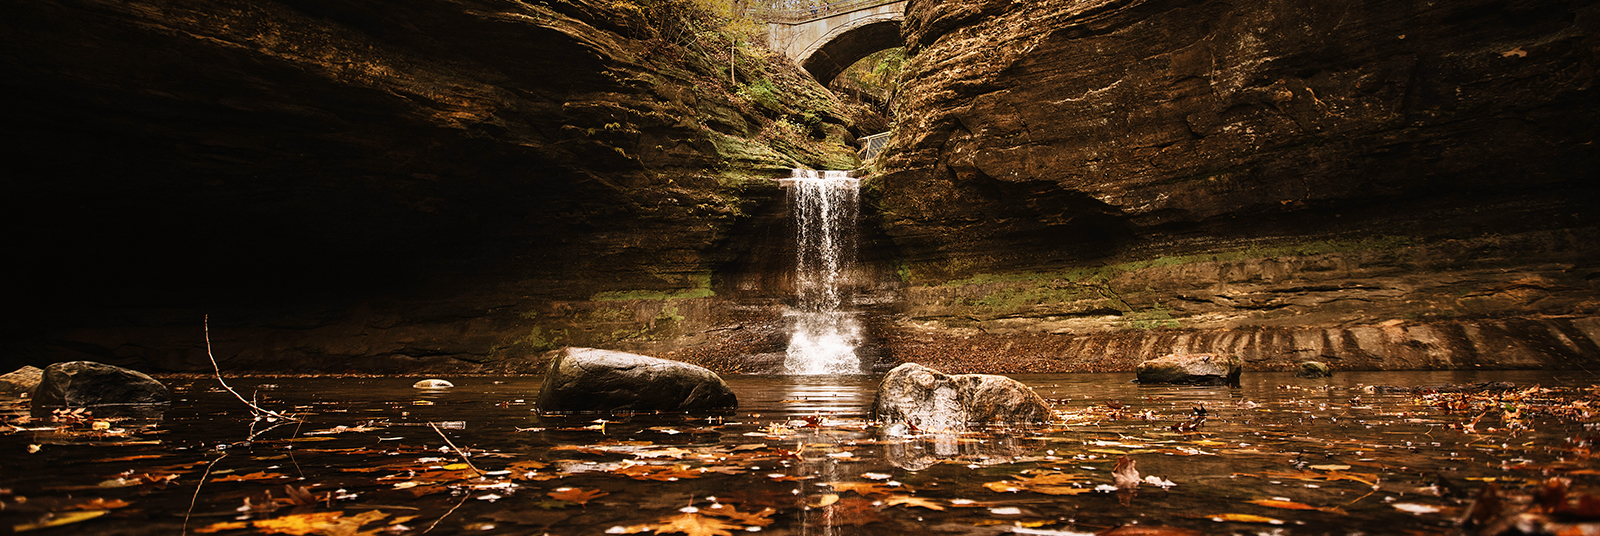 Starved Rock IMG